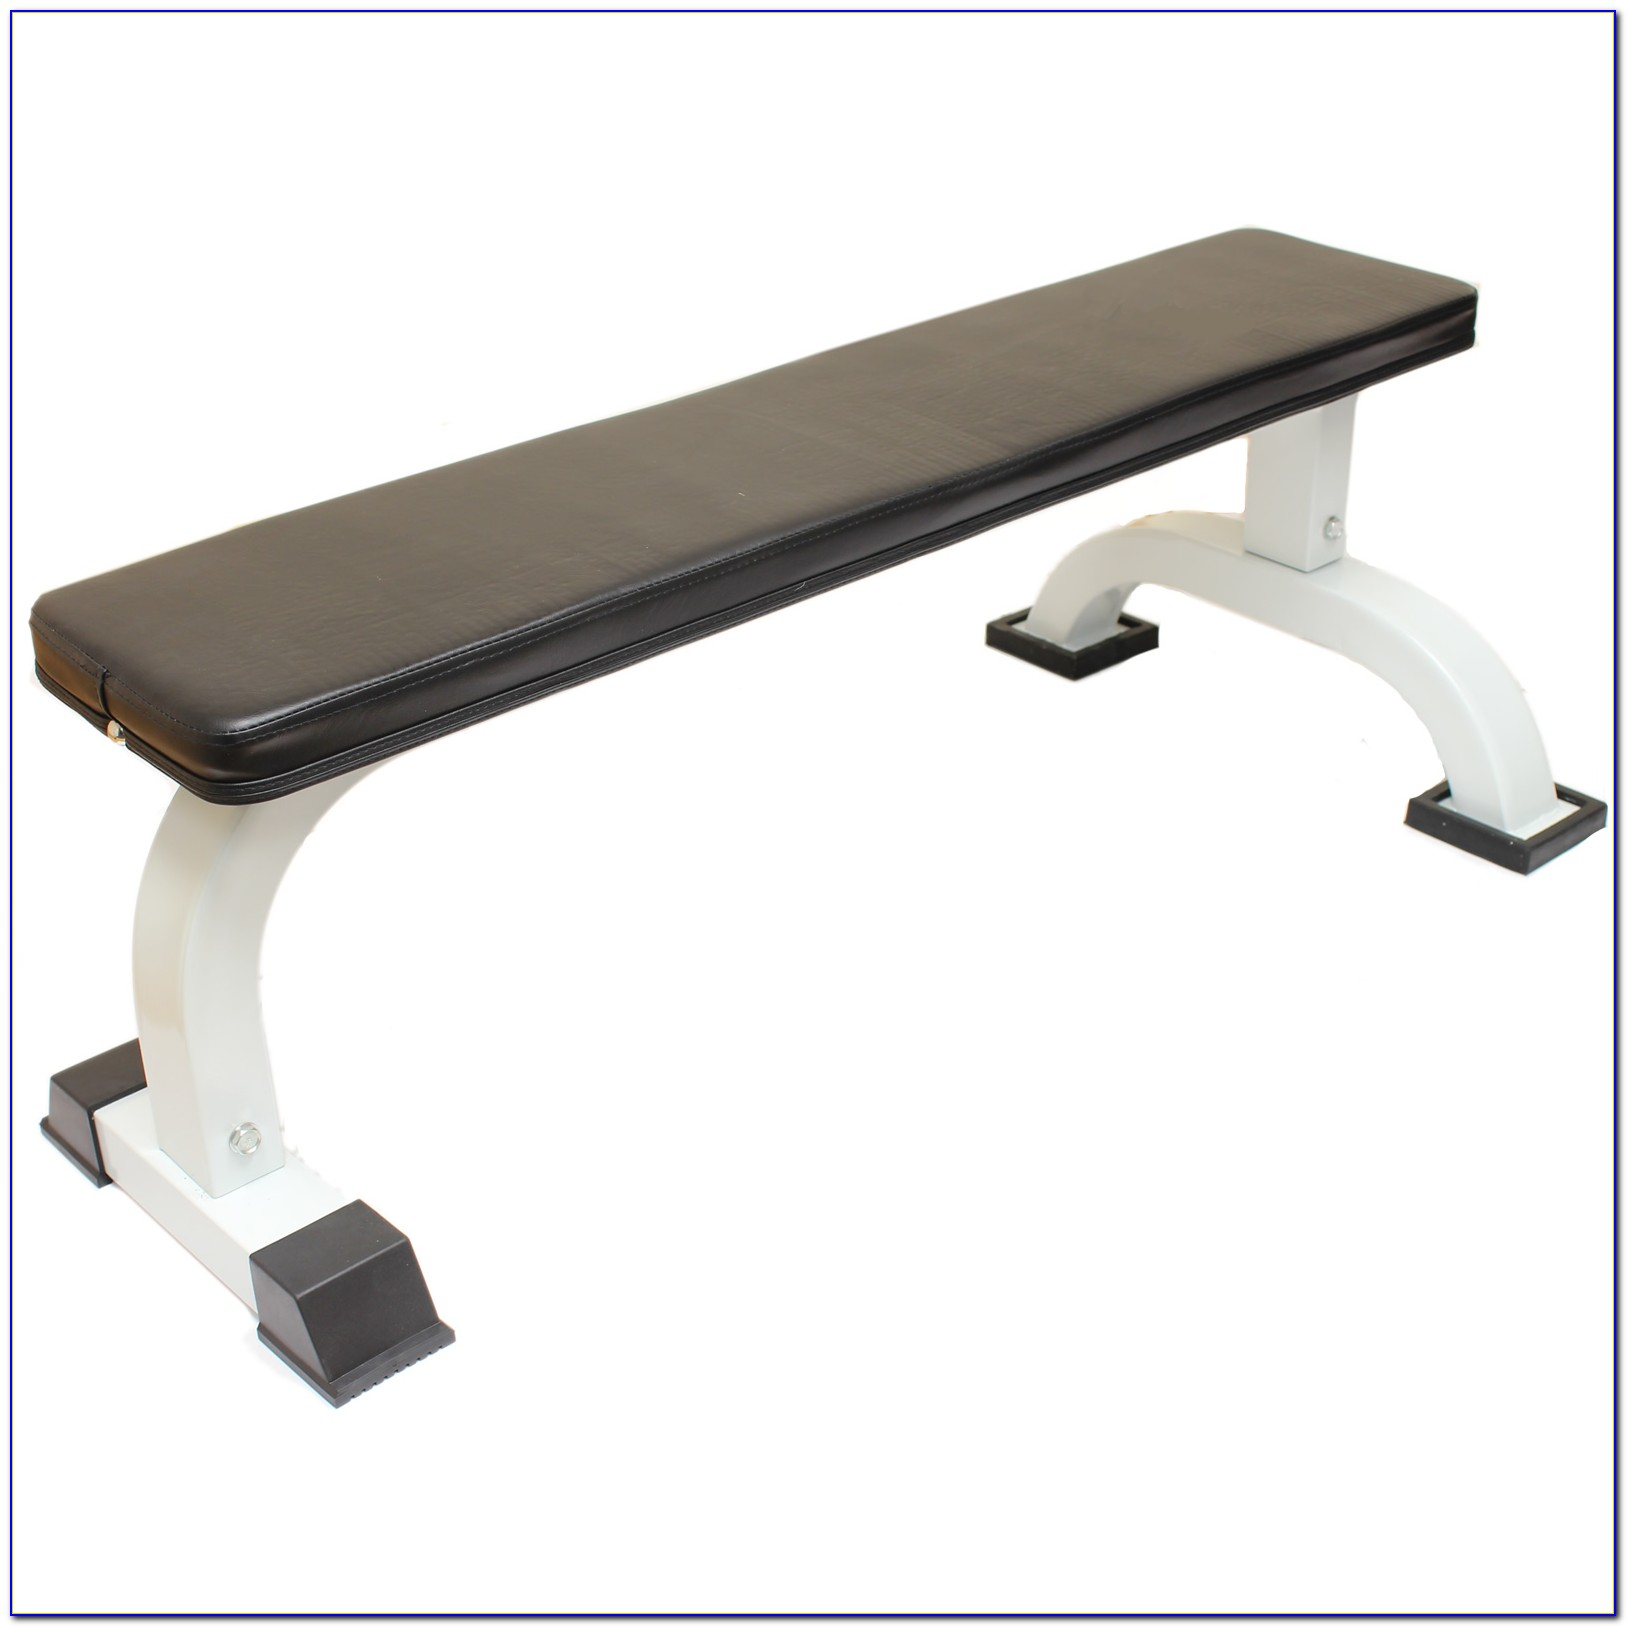 Fitness Gear Pro Utility Bench Leg Attachment